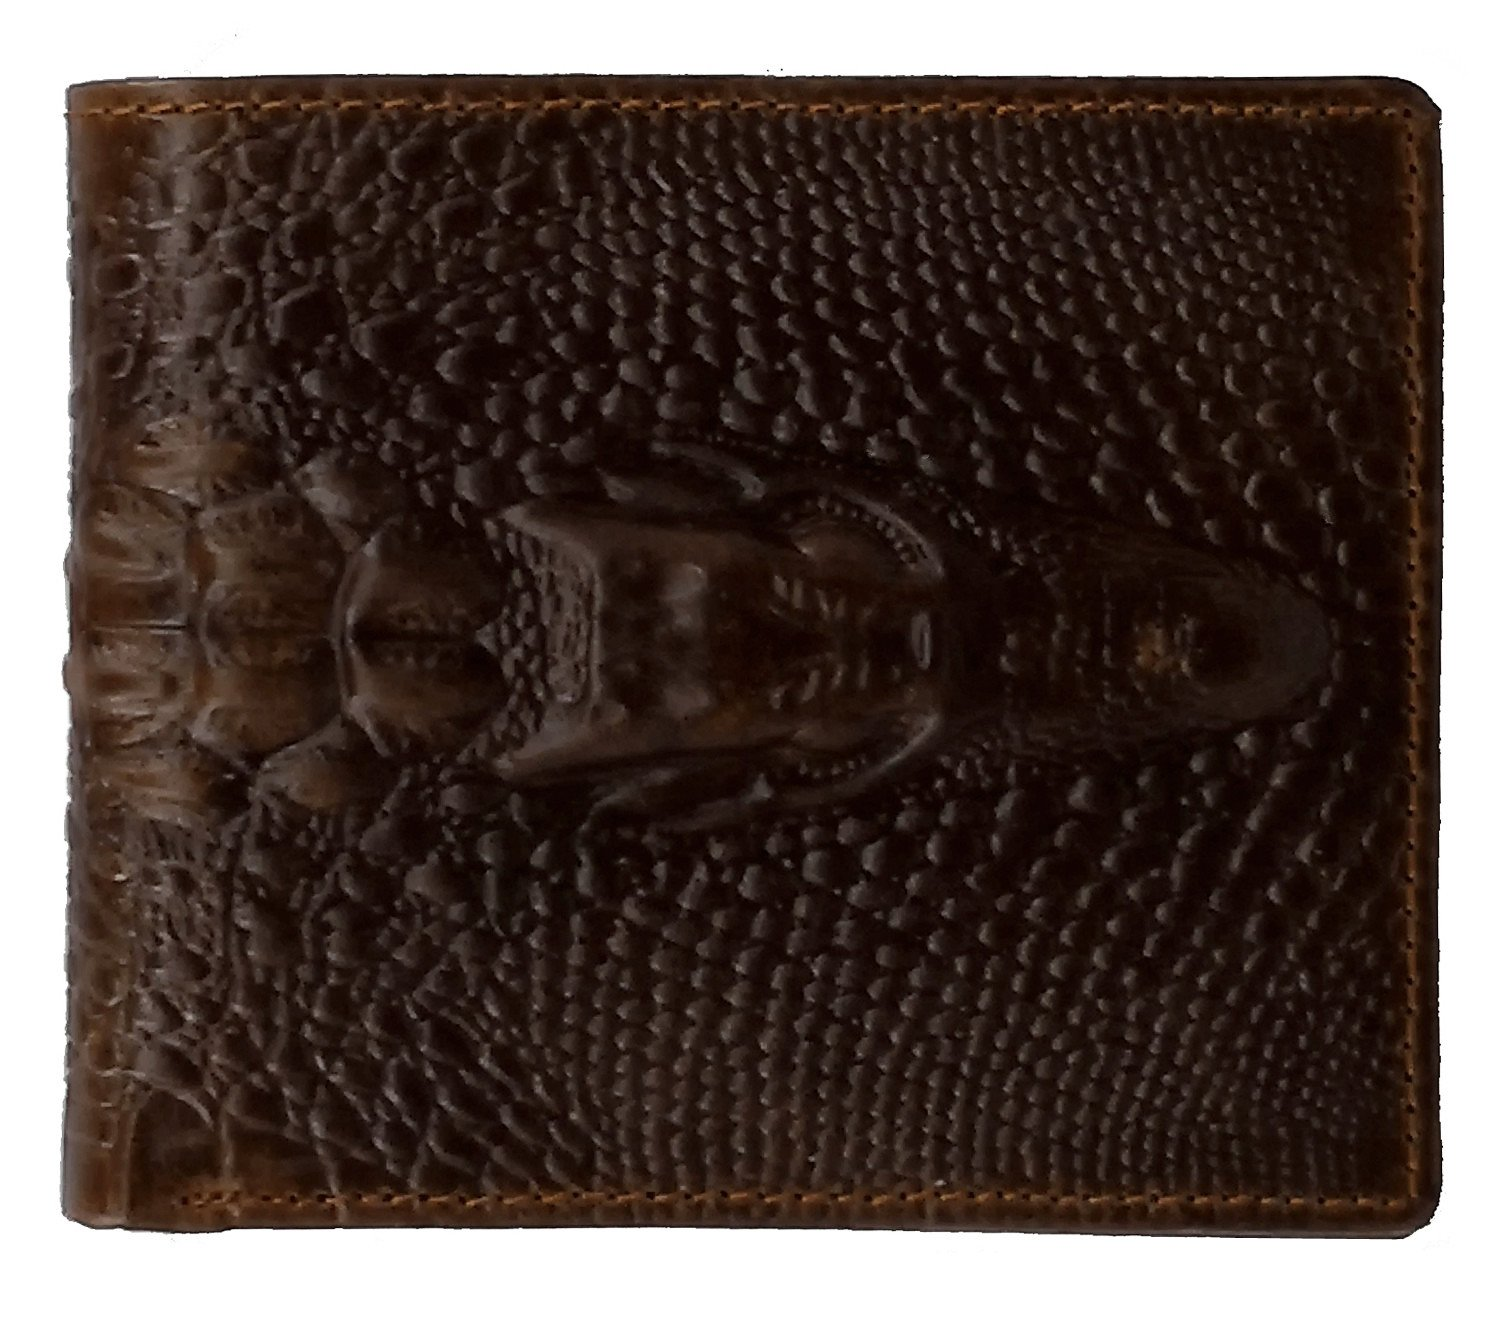 ABC STORY Mens Retro Crazy Horse Leather Slim Bifold Crocodile Short Wallet Purse Money Clip For Women Brown